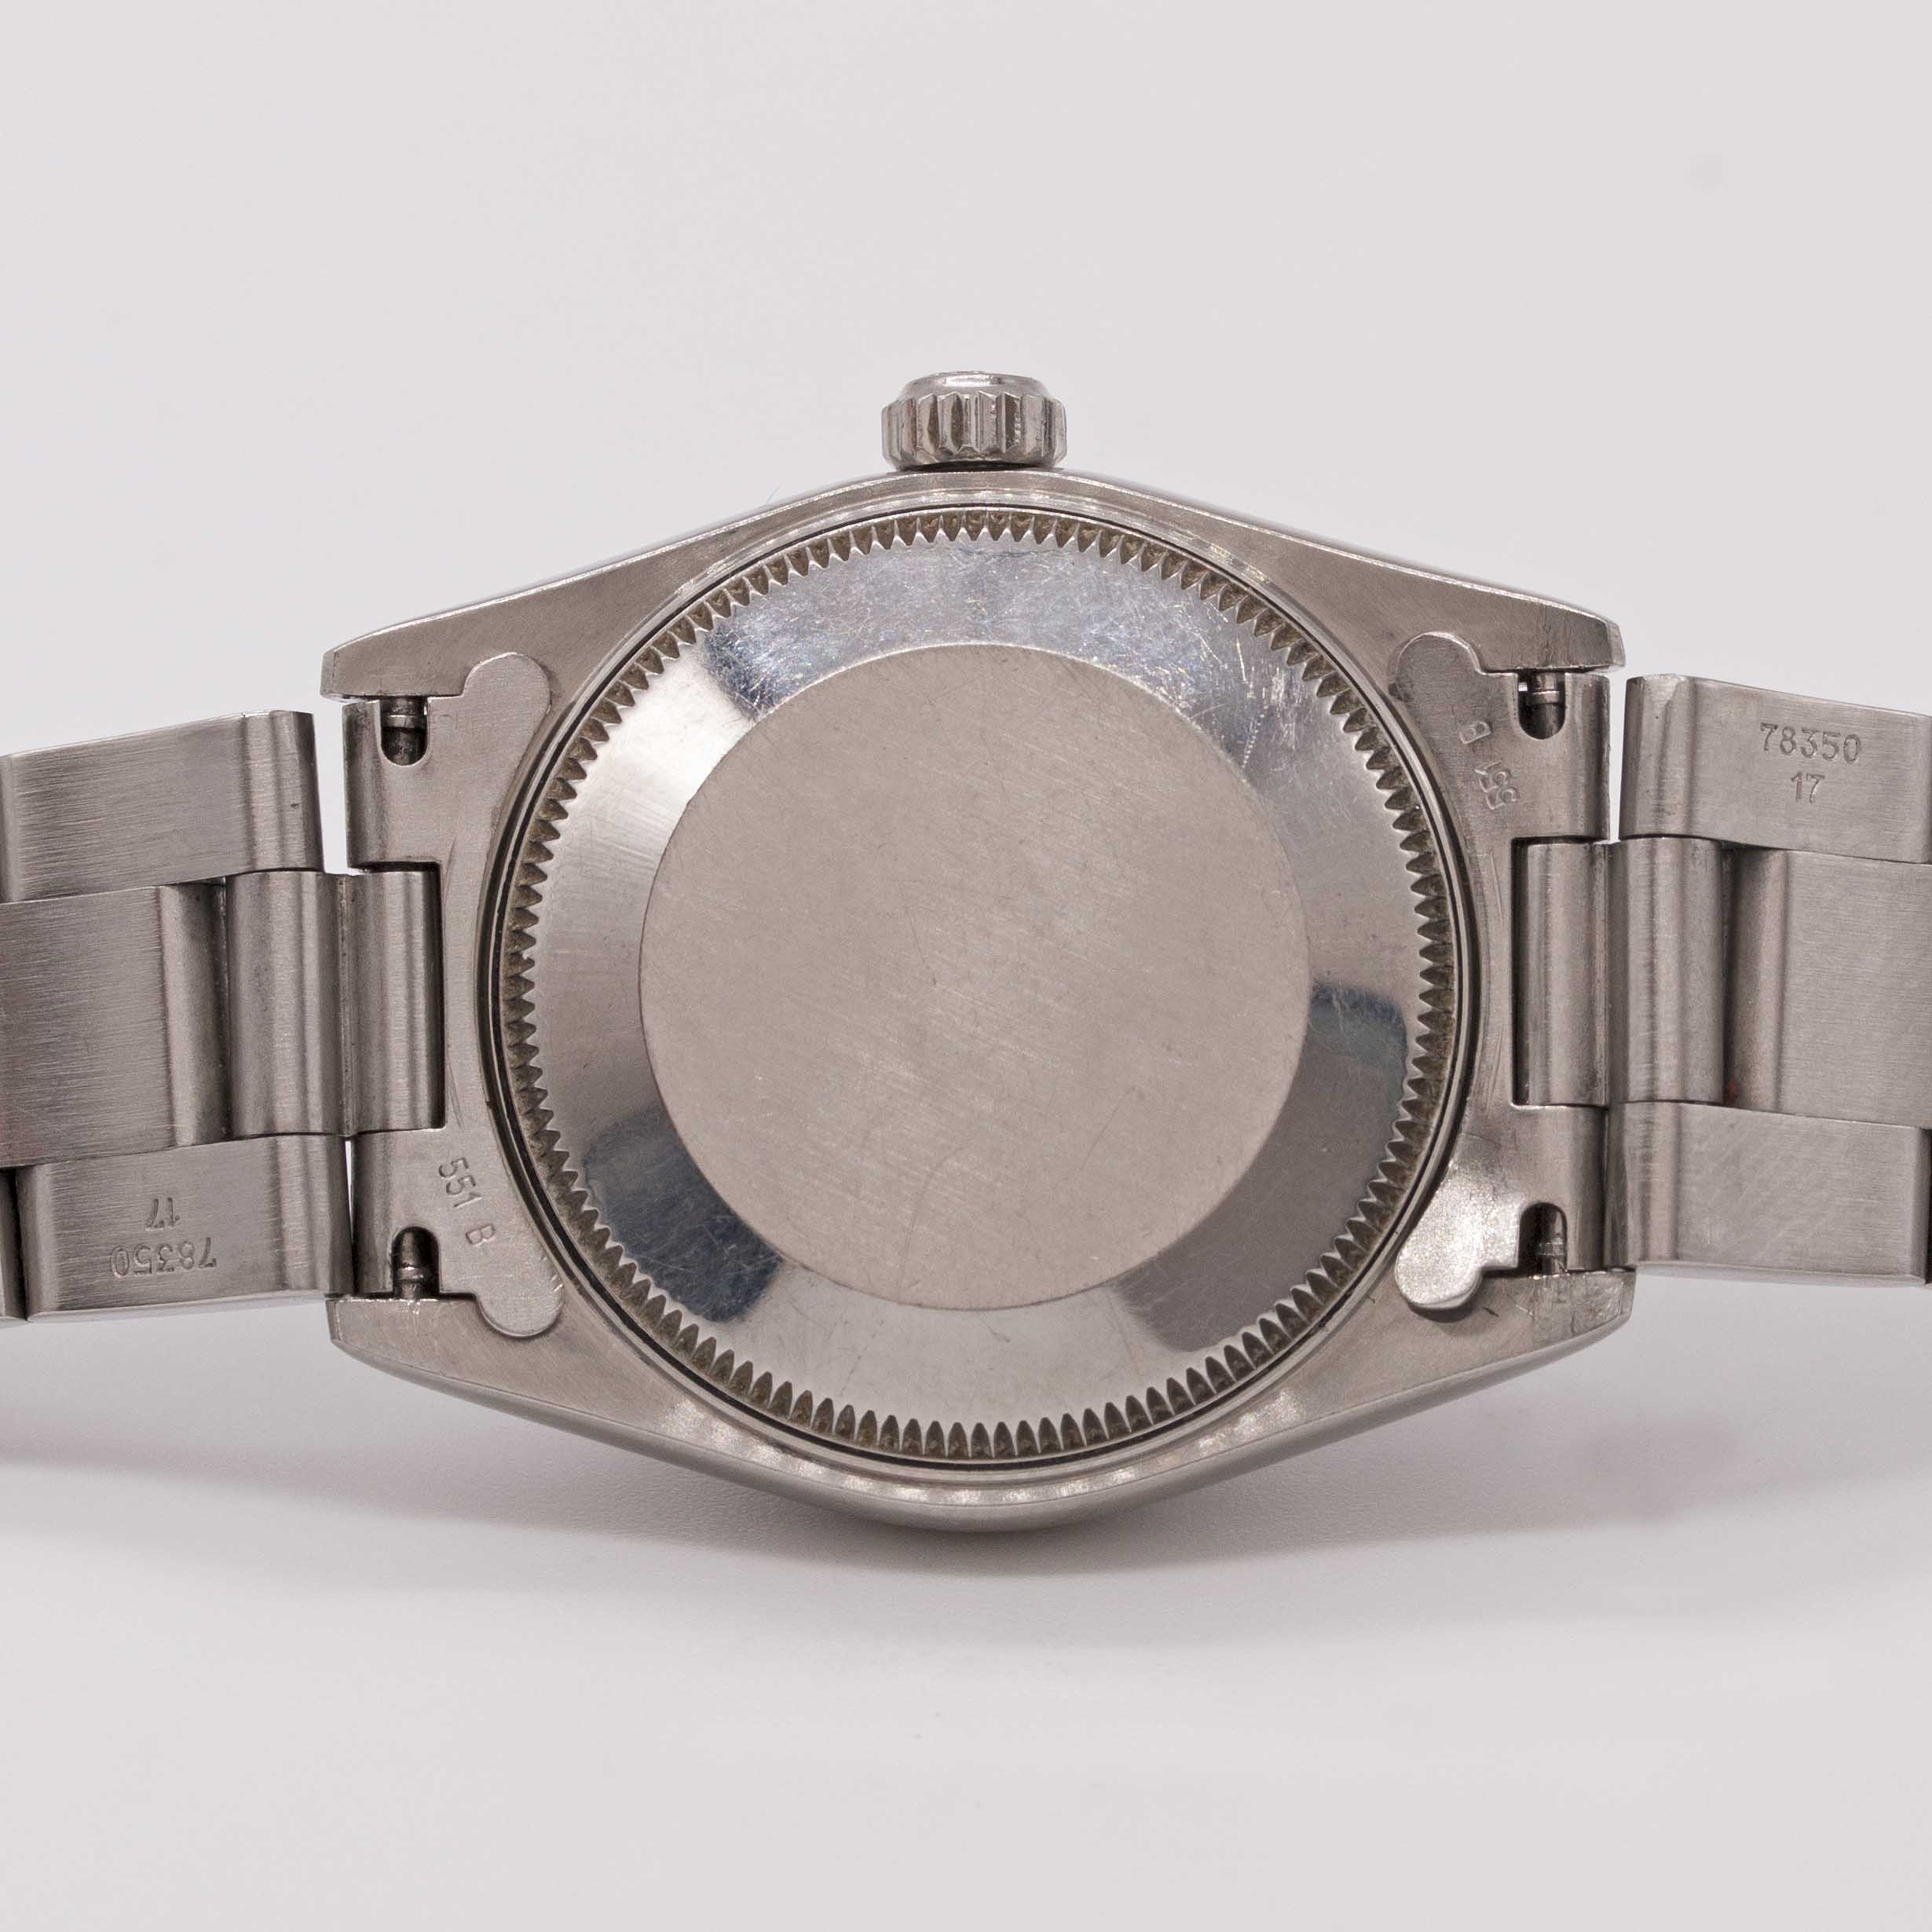 Lot 30 - A MID SIZE STAINLESS STEEL ROLEX OYSTER PERPETUAL DATEJUST BRACELET WATCH CIRCA 2001, REF. 78240